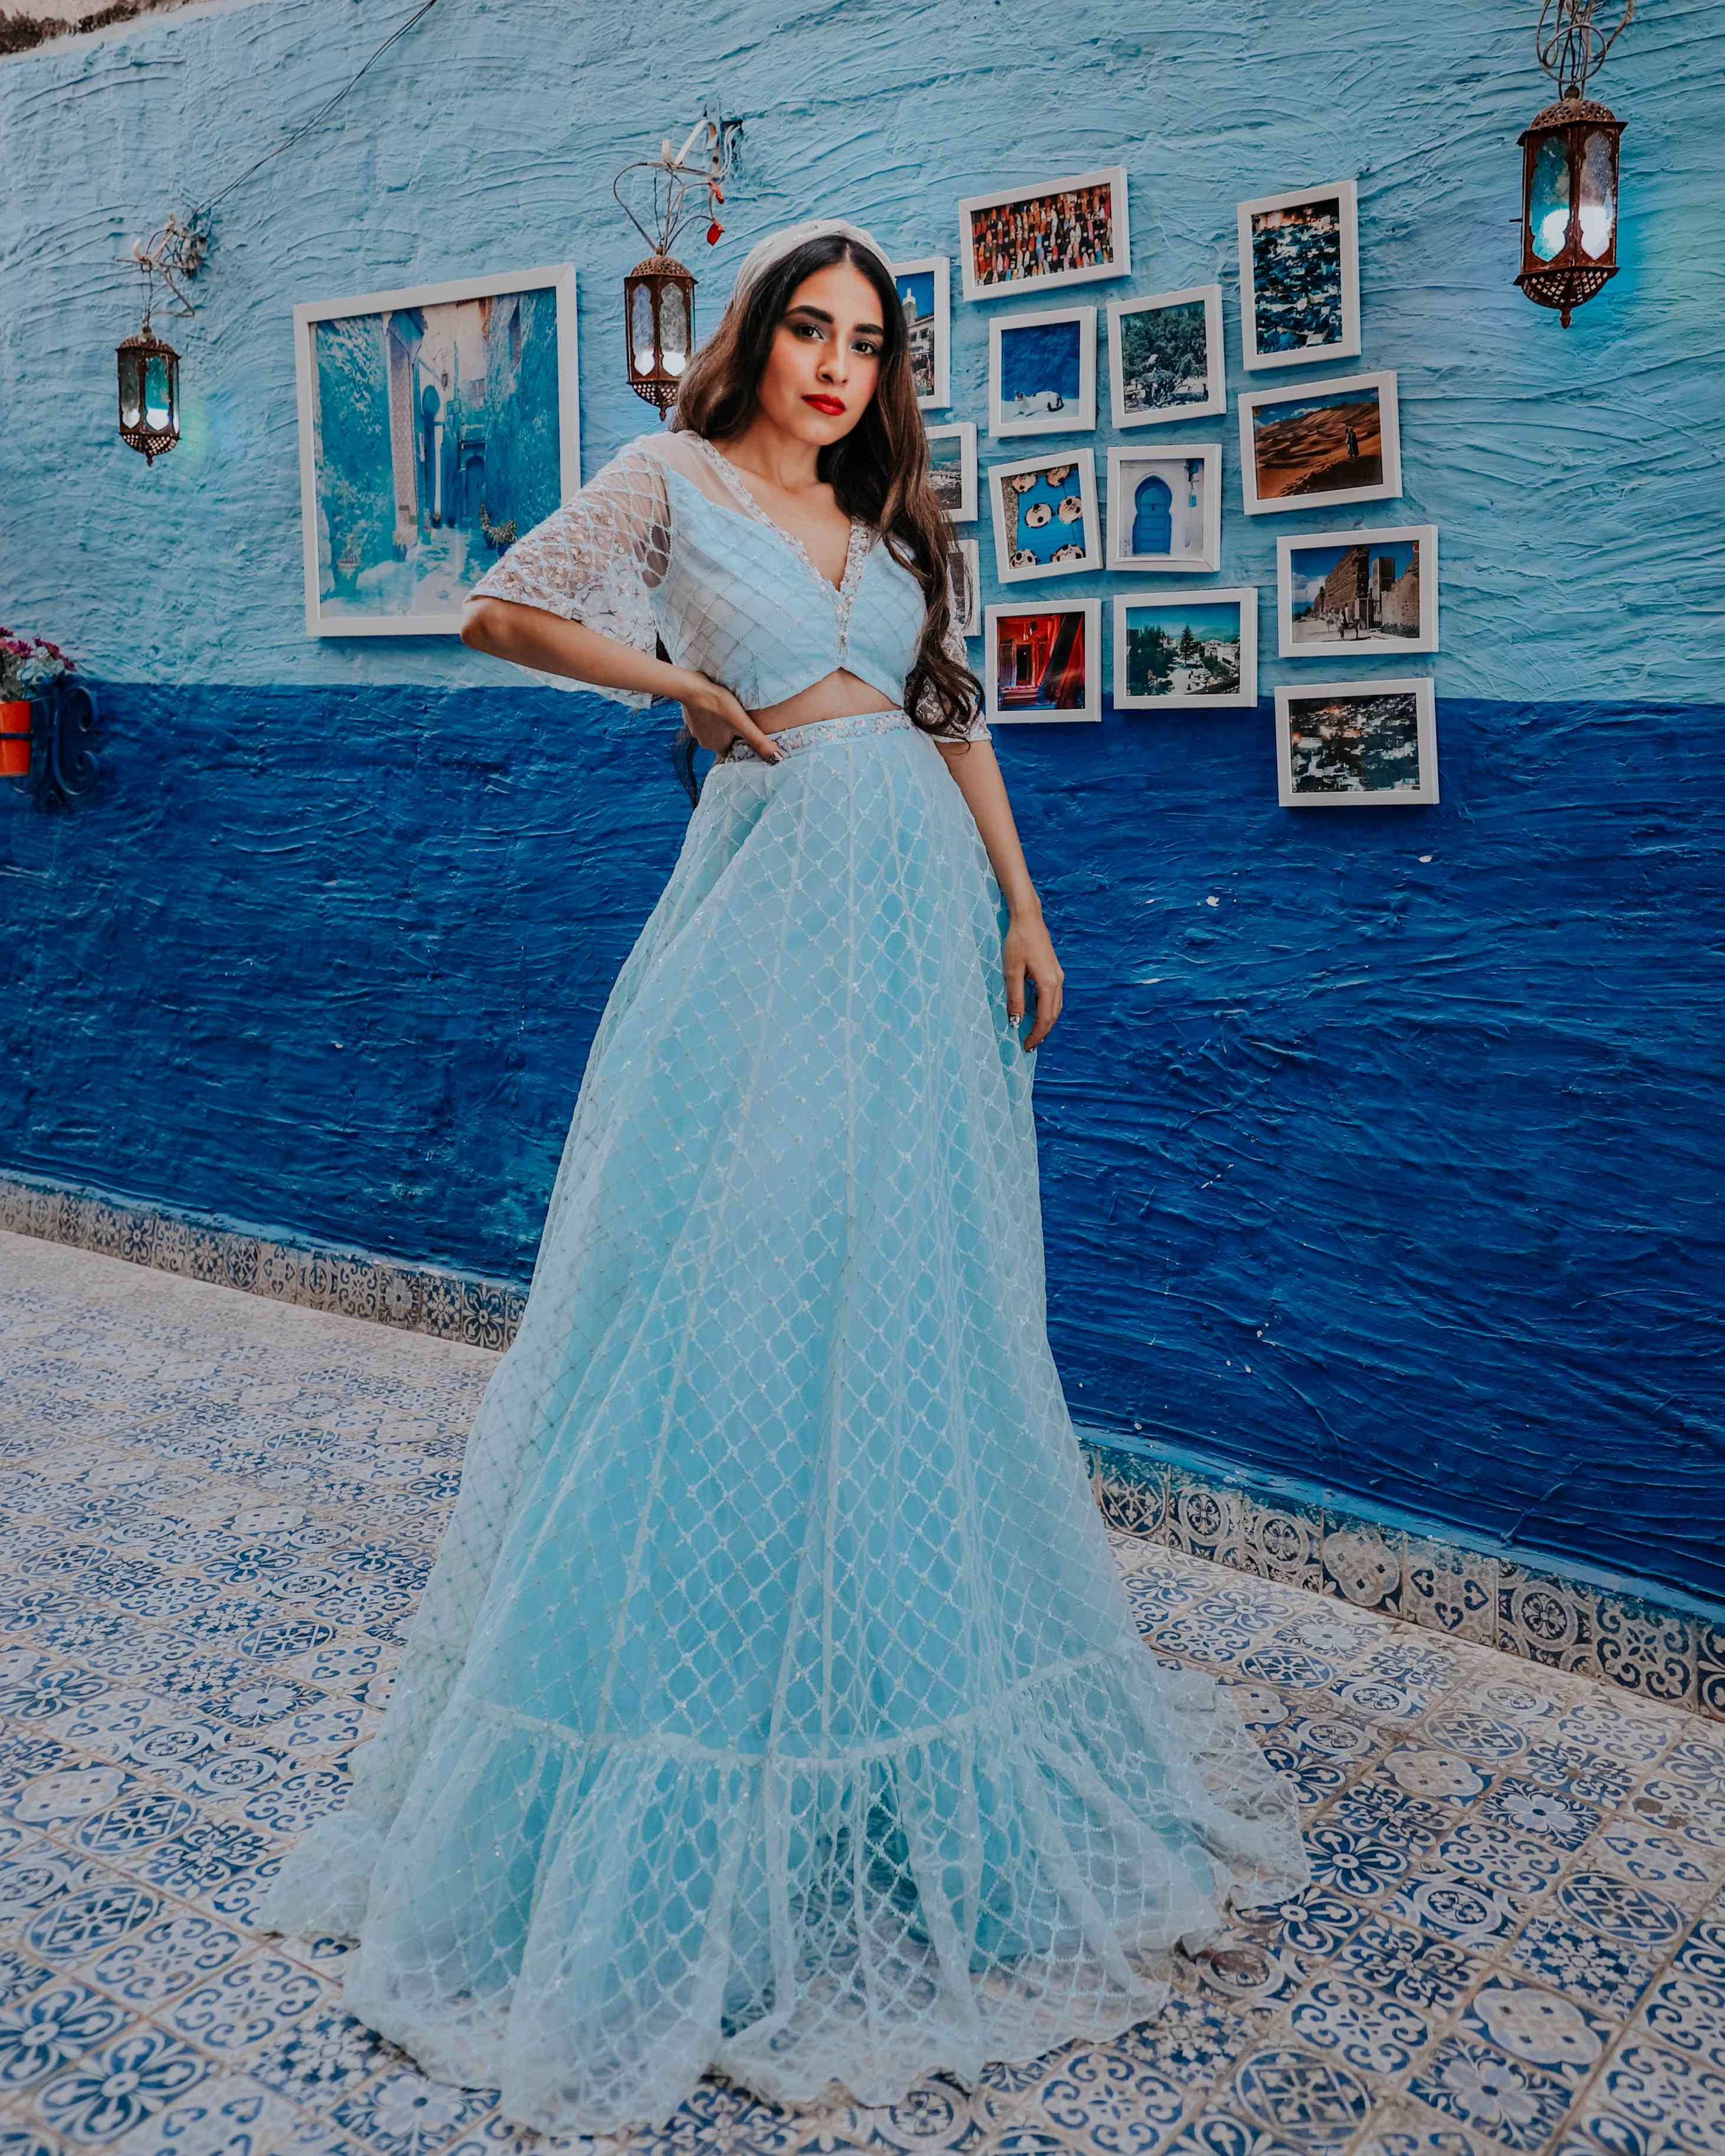 blue lehenga,princess outfit, princess lehenga, pernias pop up shop, Blue gown, wedding outfits, indian wedding outfit, indian wedding outfit ideas,bridesmaid outfit ideas, blue mermain gown, blue mermaid lehenga, shaadi outfits for bride, wedding outfit ideas, indian wedding guest outfit, idian wedding guest outfit ideas, indian wedding outfit under 50,000, indian wedding guest outfit budget, blue embroidered lehenga, indian traditional dress, blue net lehenga choli, buy lehenga online,